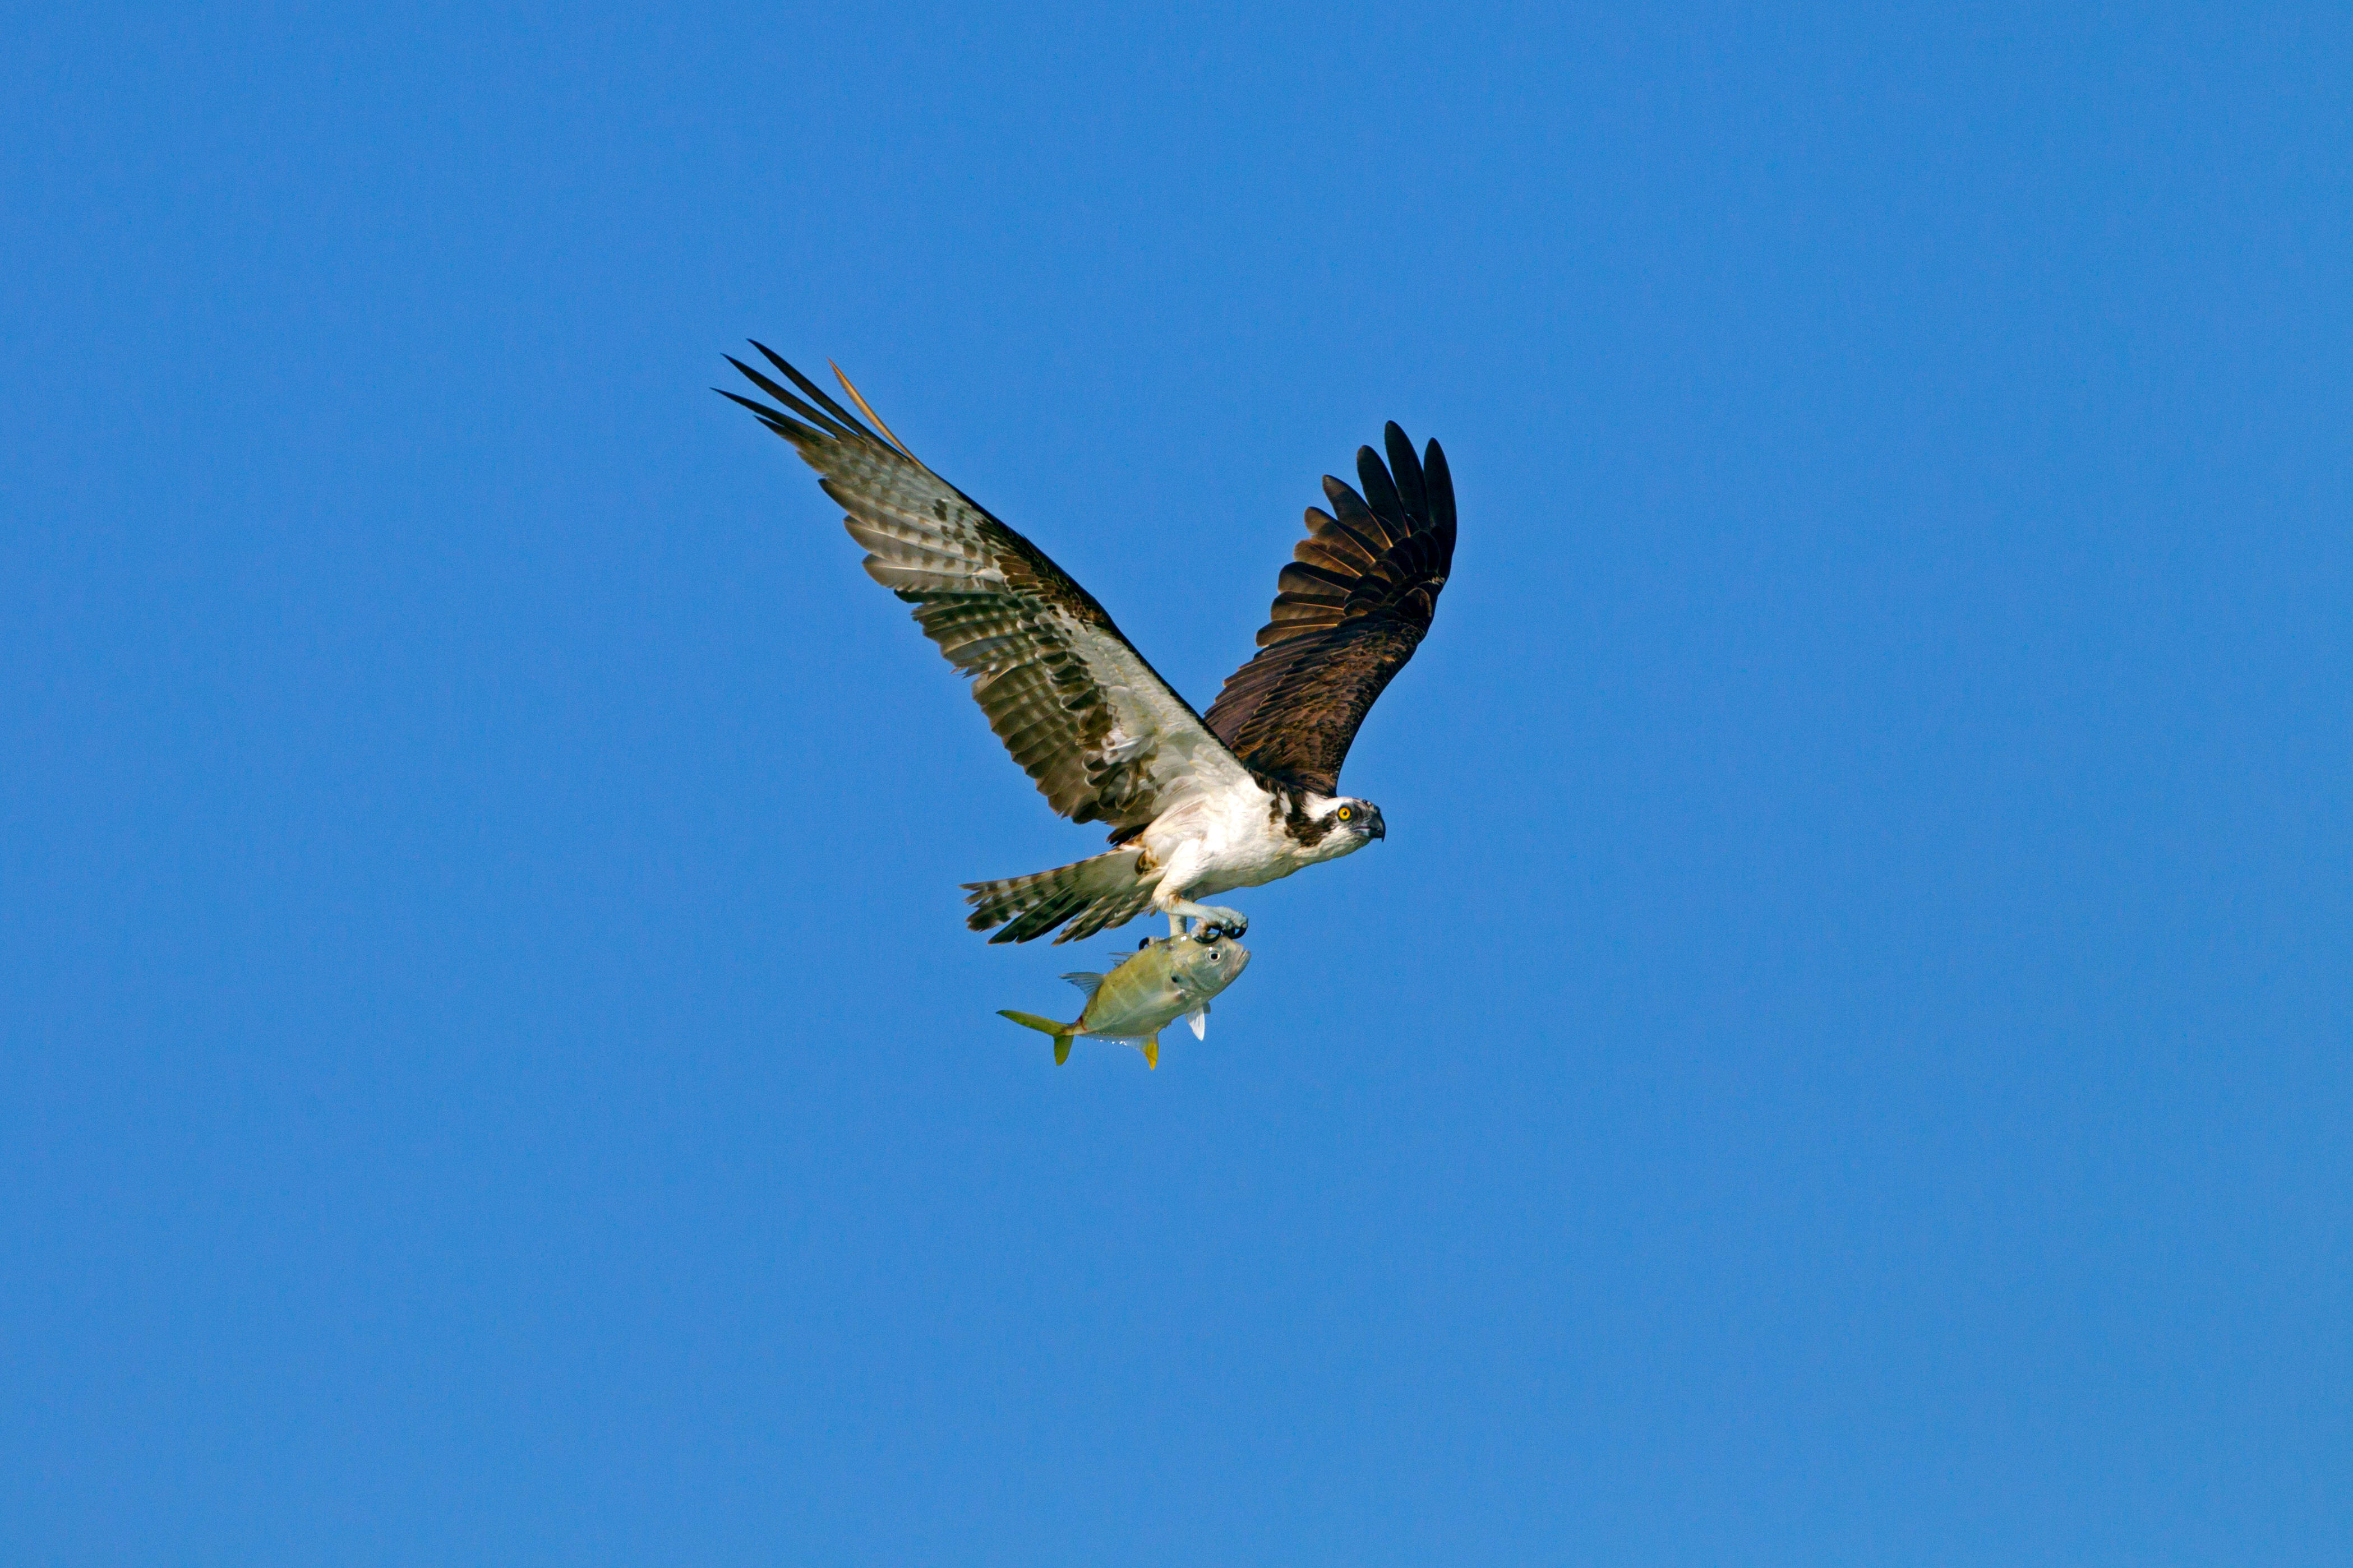 Osprey © Ernie Janes / Alamy Stock Photo